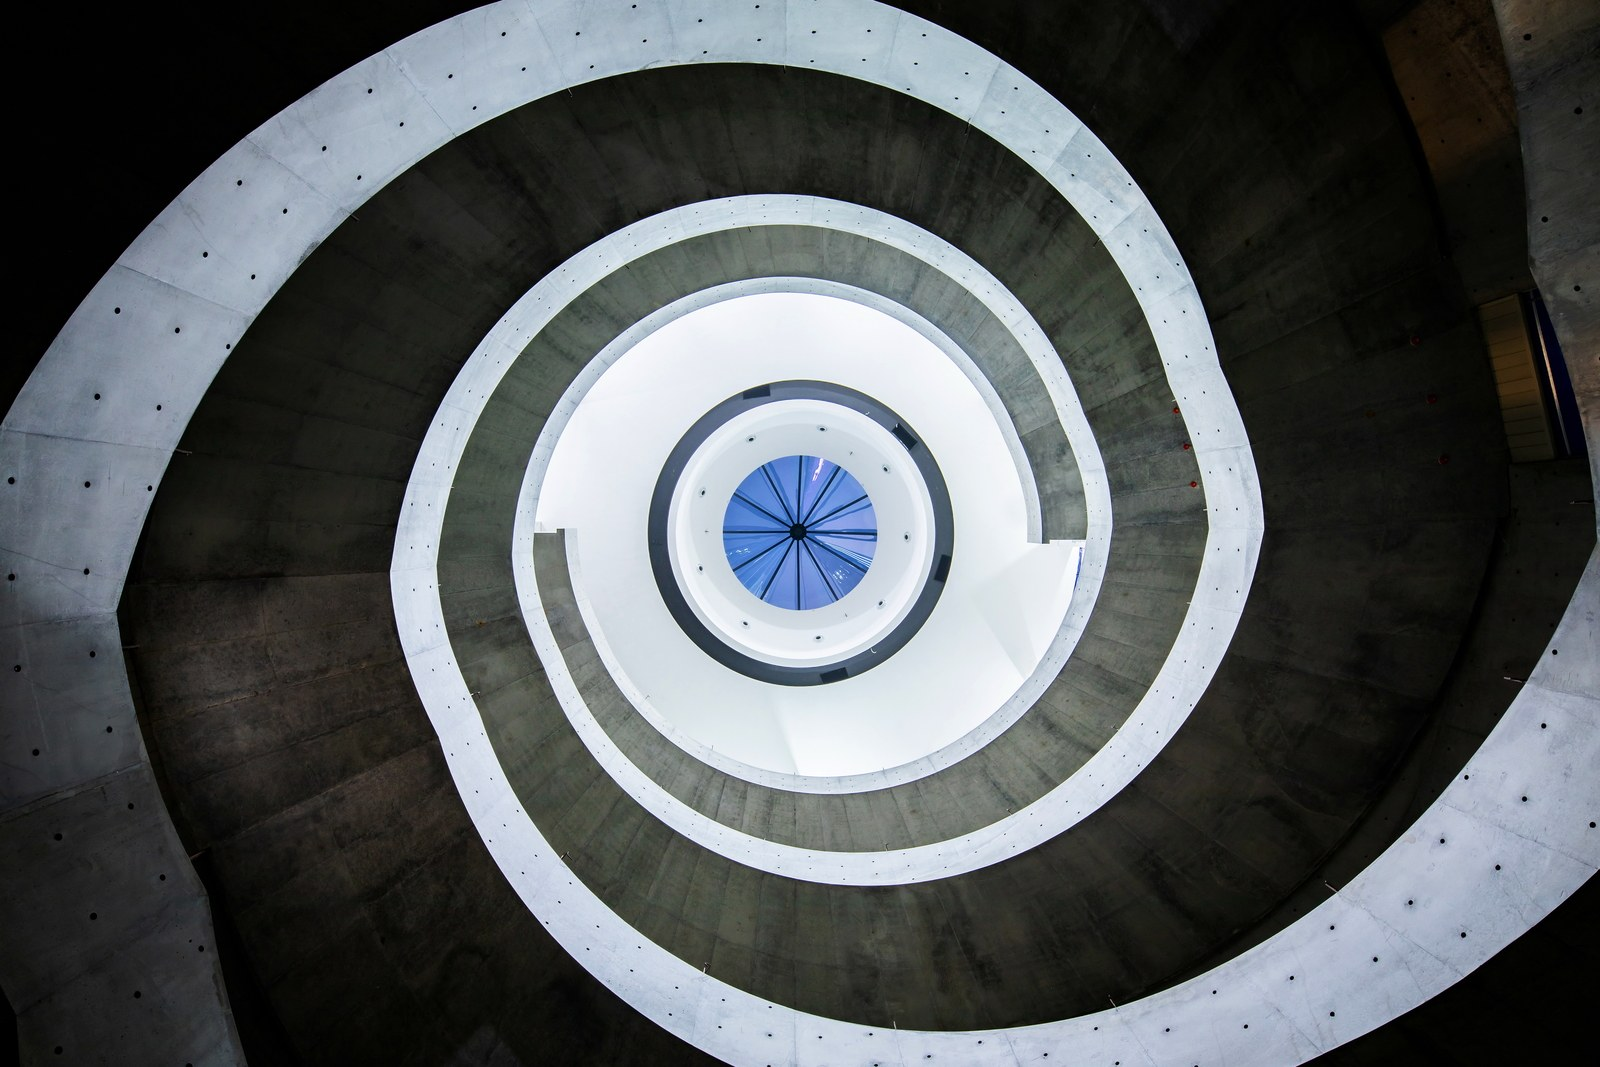 Staircase by Tadao Ando